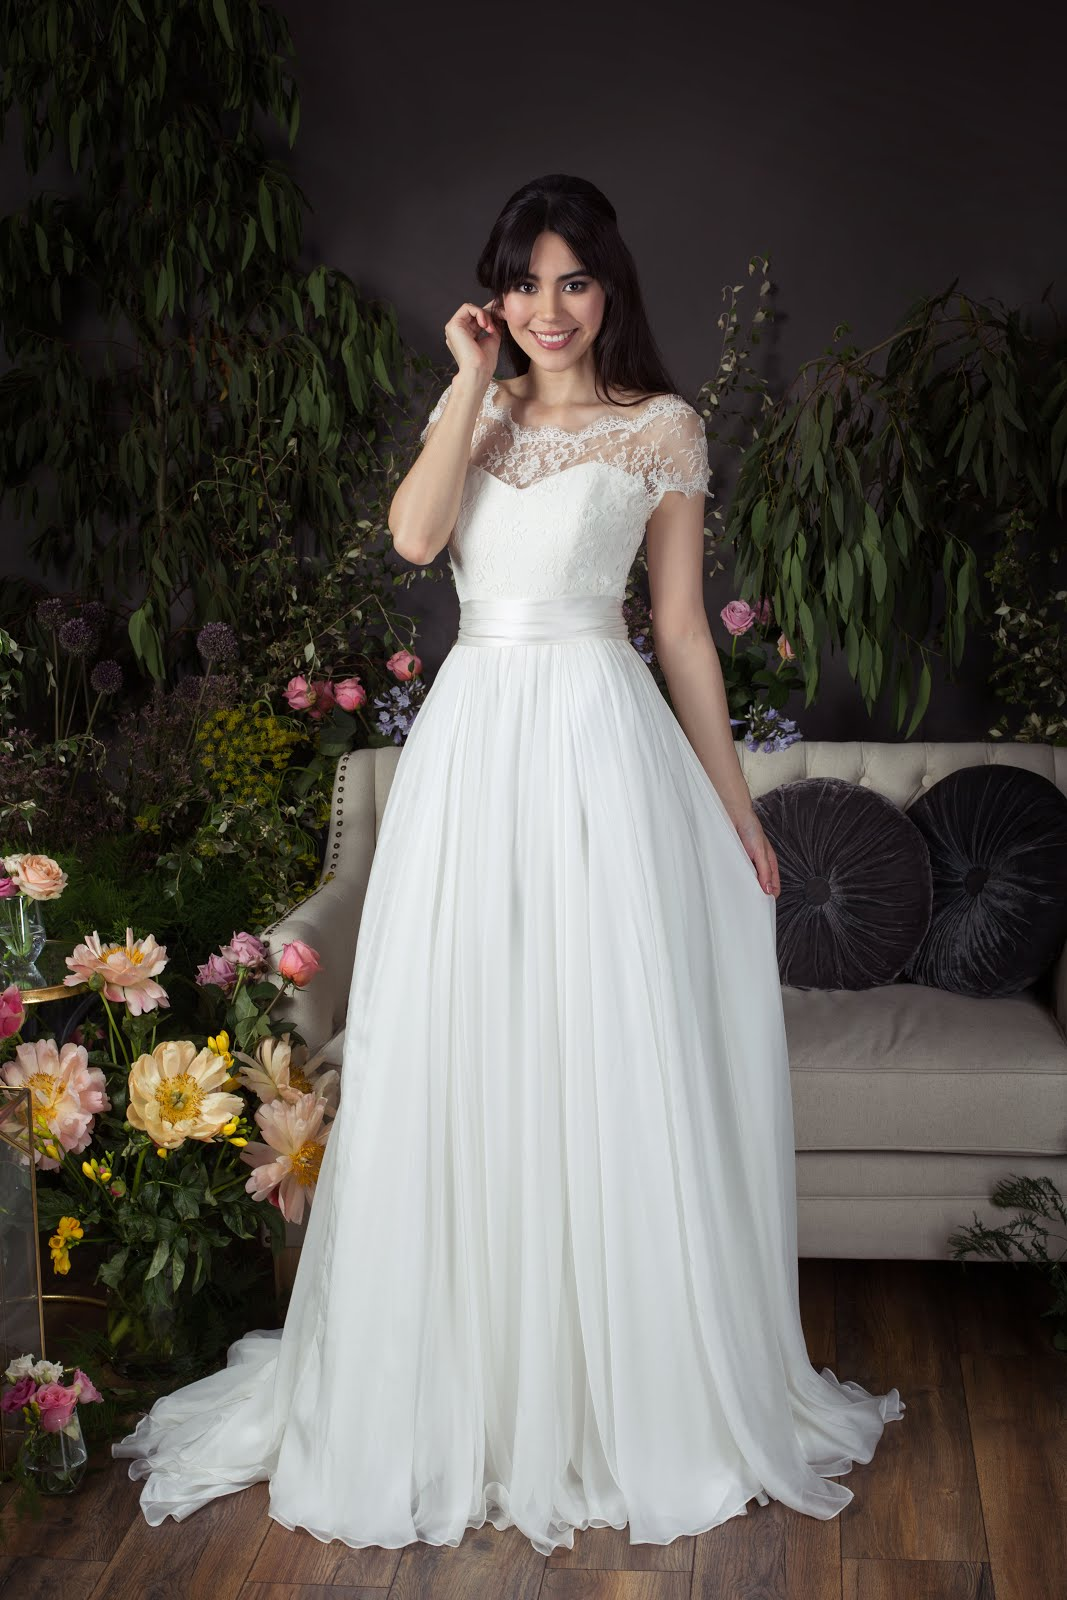 Choosing a wedding dress - top tips